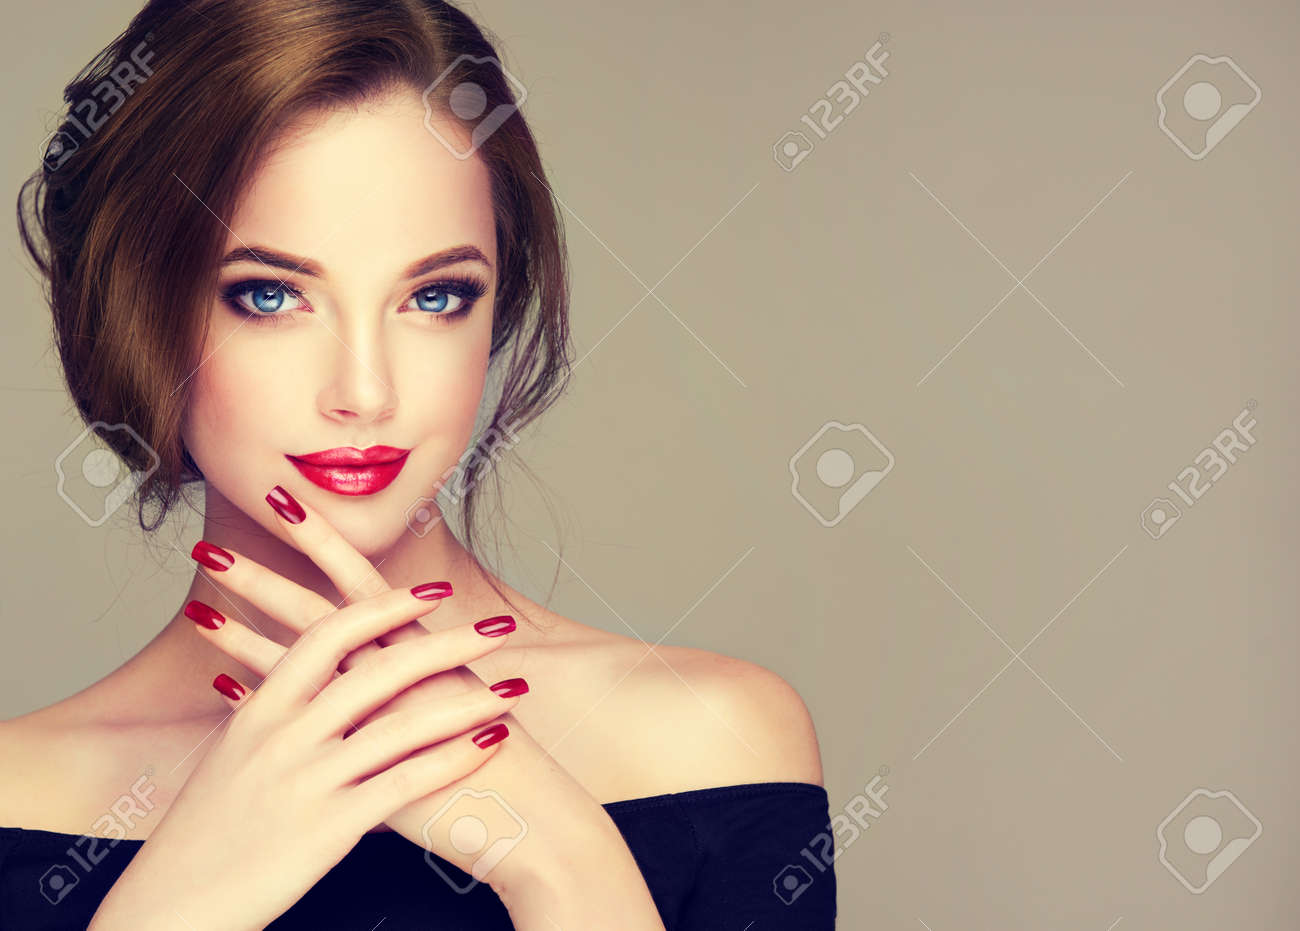 Portrait of young, brown haired beautiful woman with long, well groomed hair gathered in elegant evening hairstyle. Hairdressing art, hair care and beauty products. - 107197327